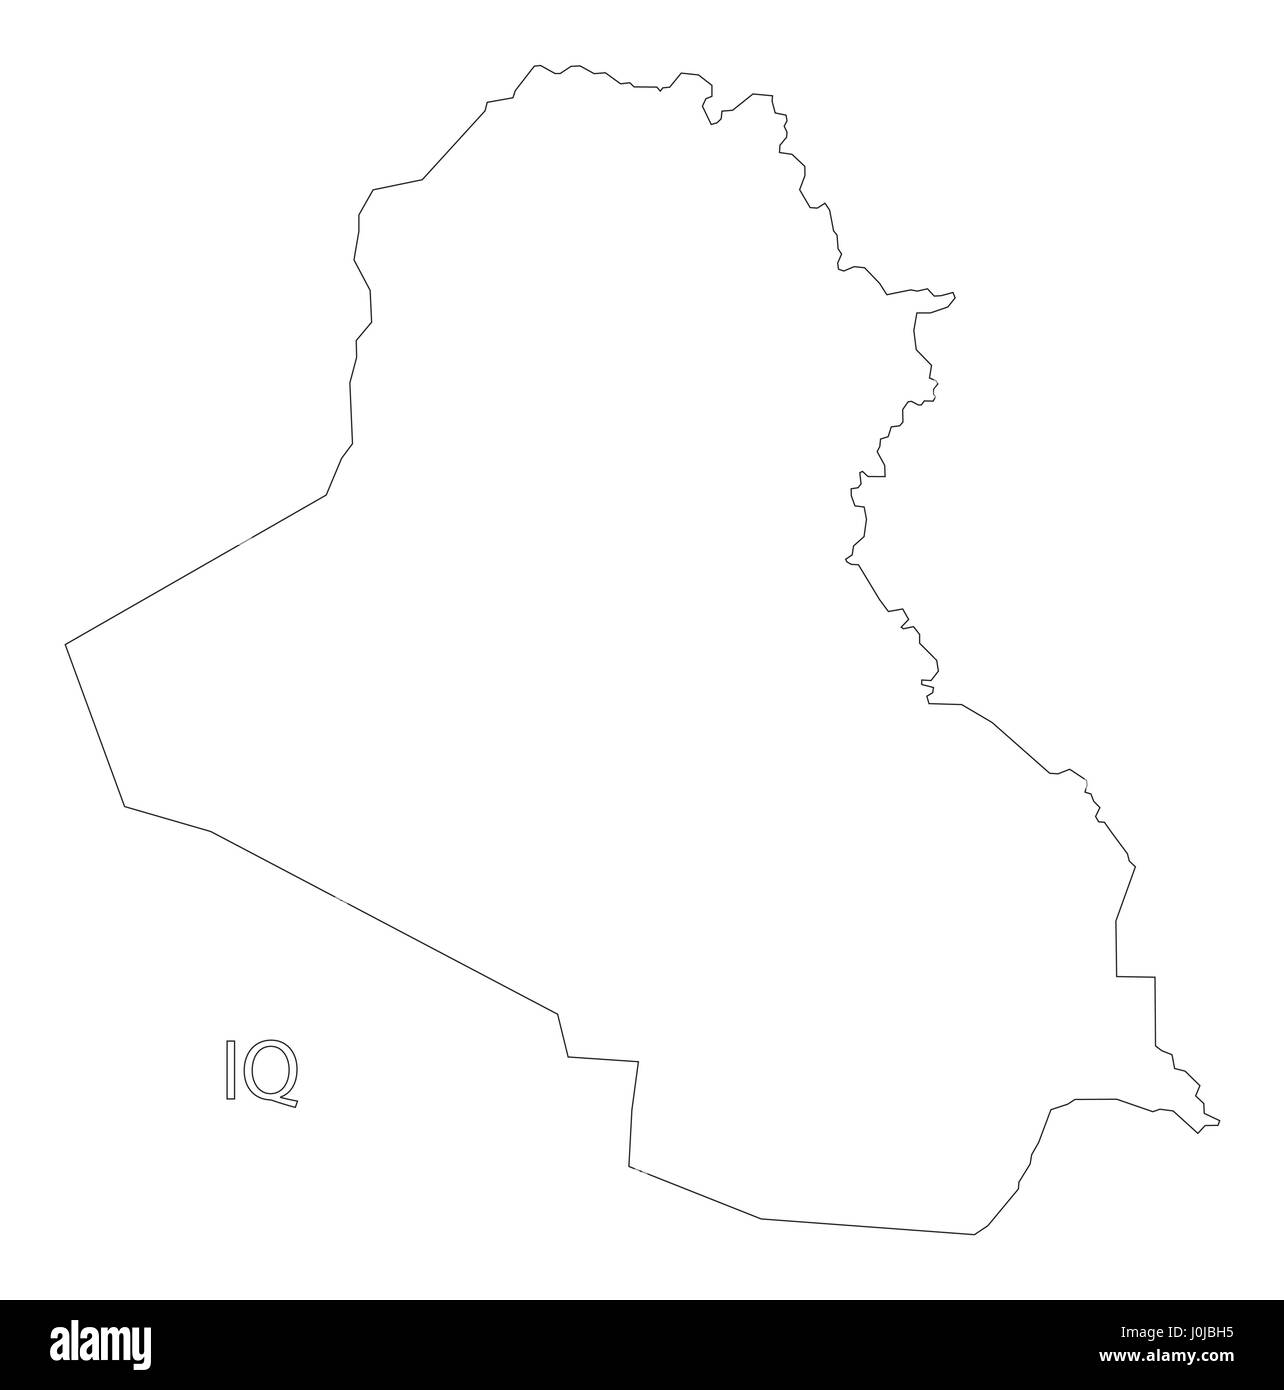 Iraq Outline Silhouette Map Illustration Stock Vector Art - Iraq map outline